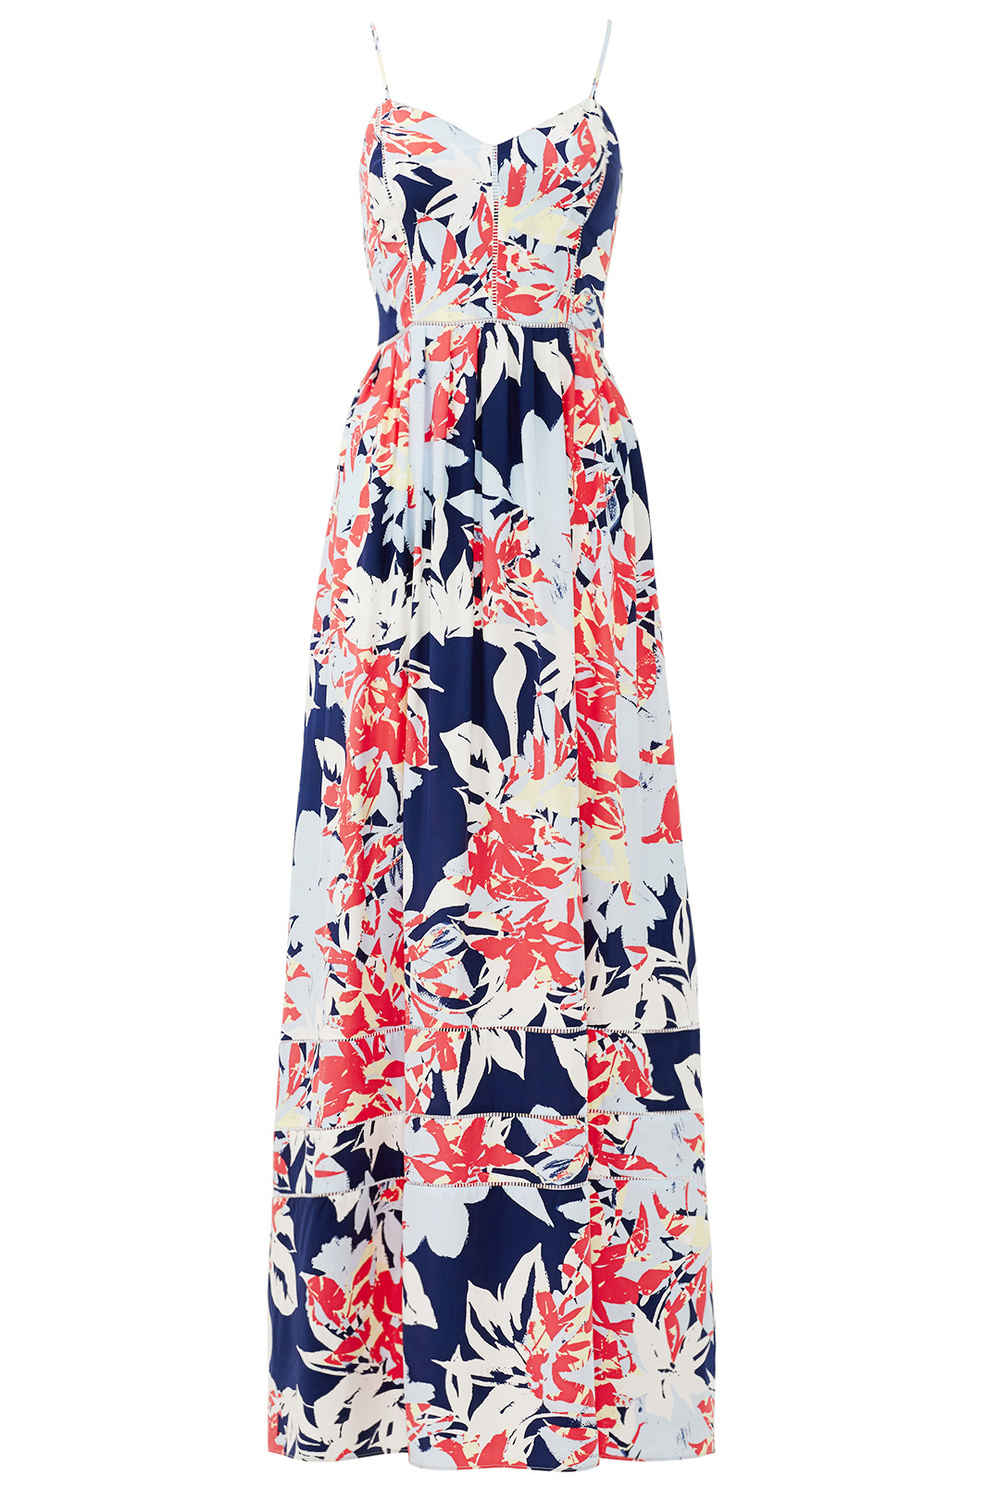 Parker Floral Verona Maxi on Rent The Runway Weddings